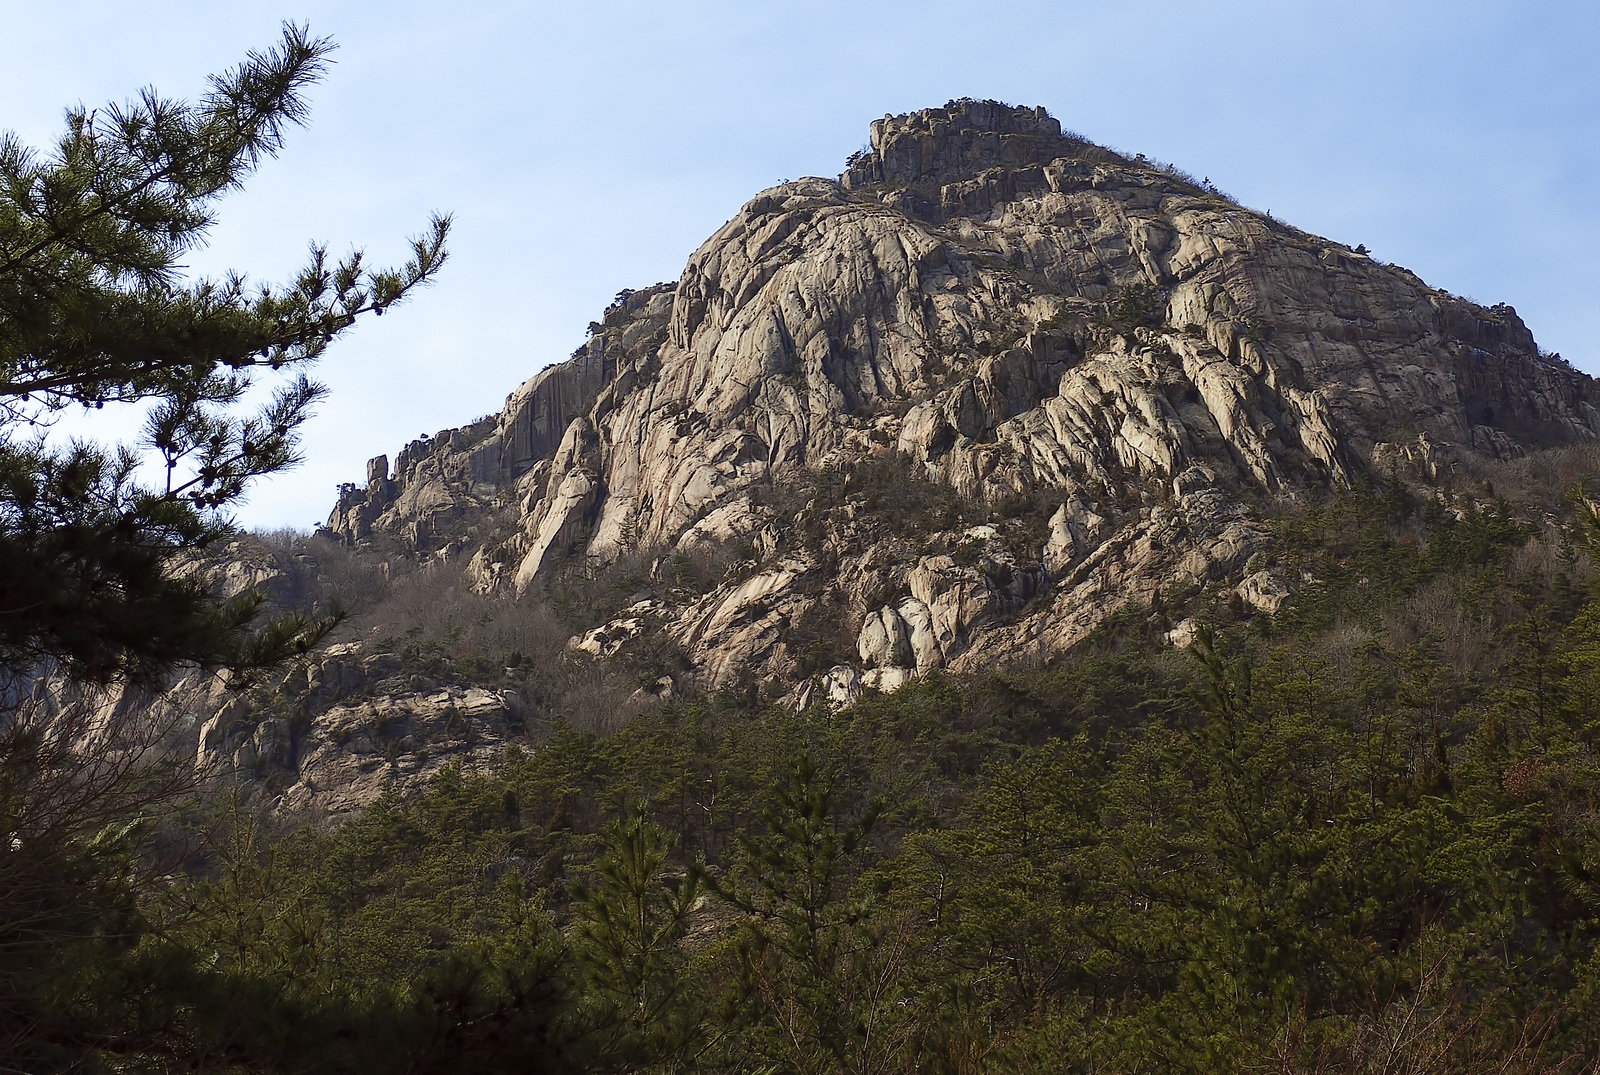 File:Wolchulsan mountain peak.jpg - Wikipedia, the free encyclopedia